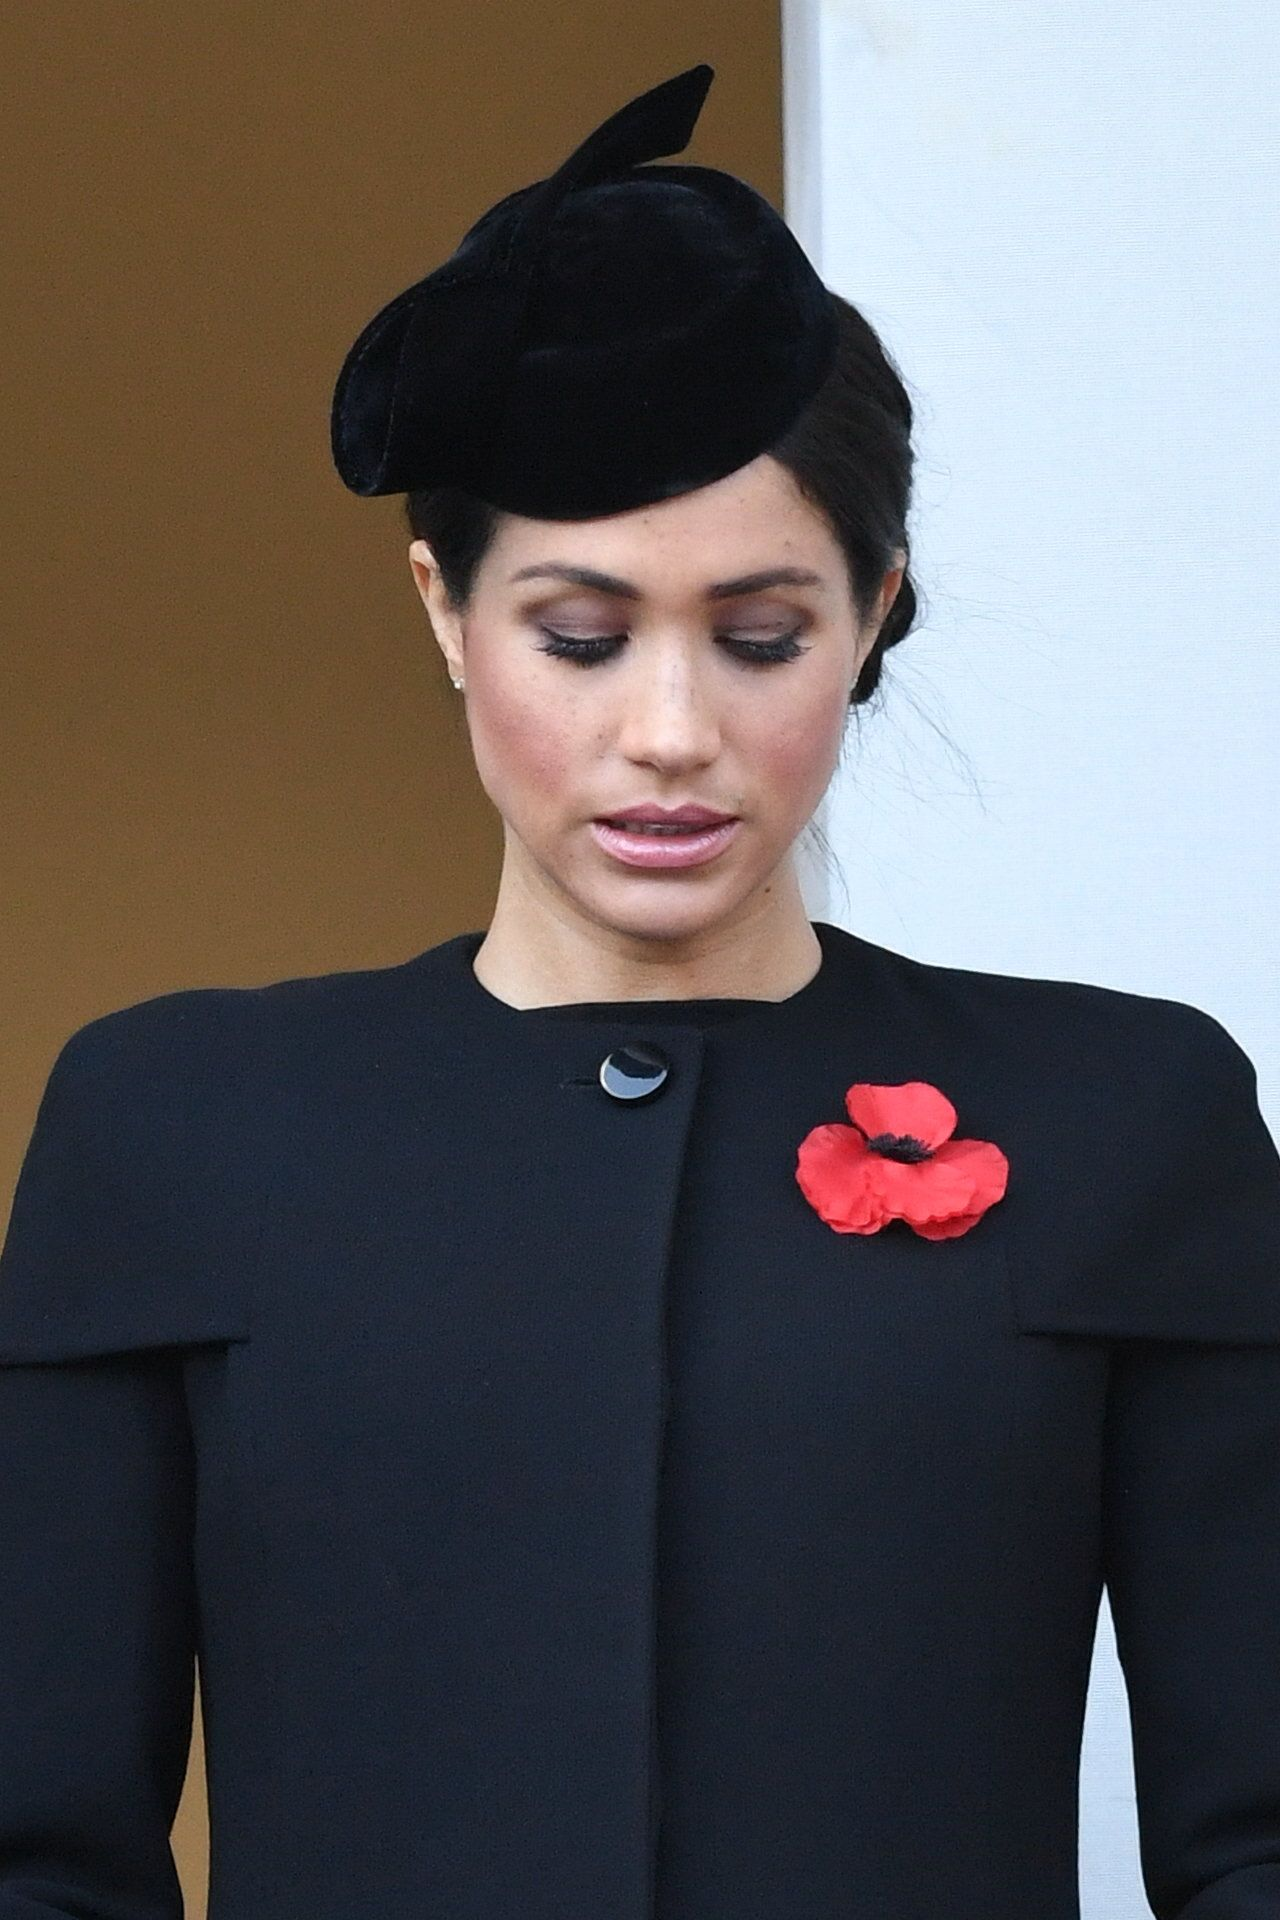 meghan-markle-annual-remembrance-sunday-memorial-in-london-11-11-2018-1.jpg